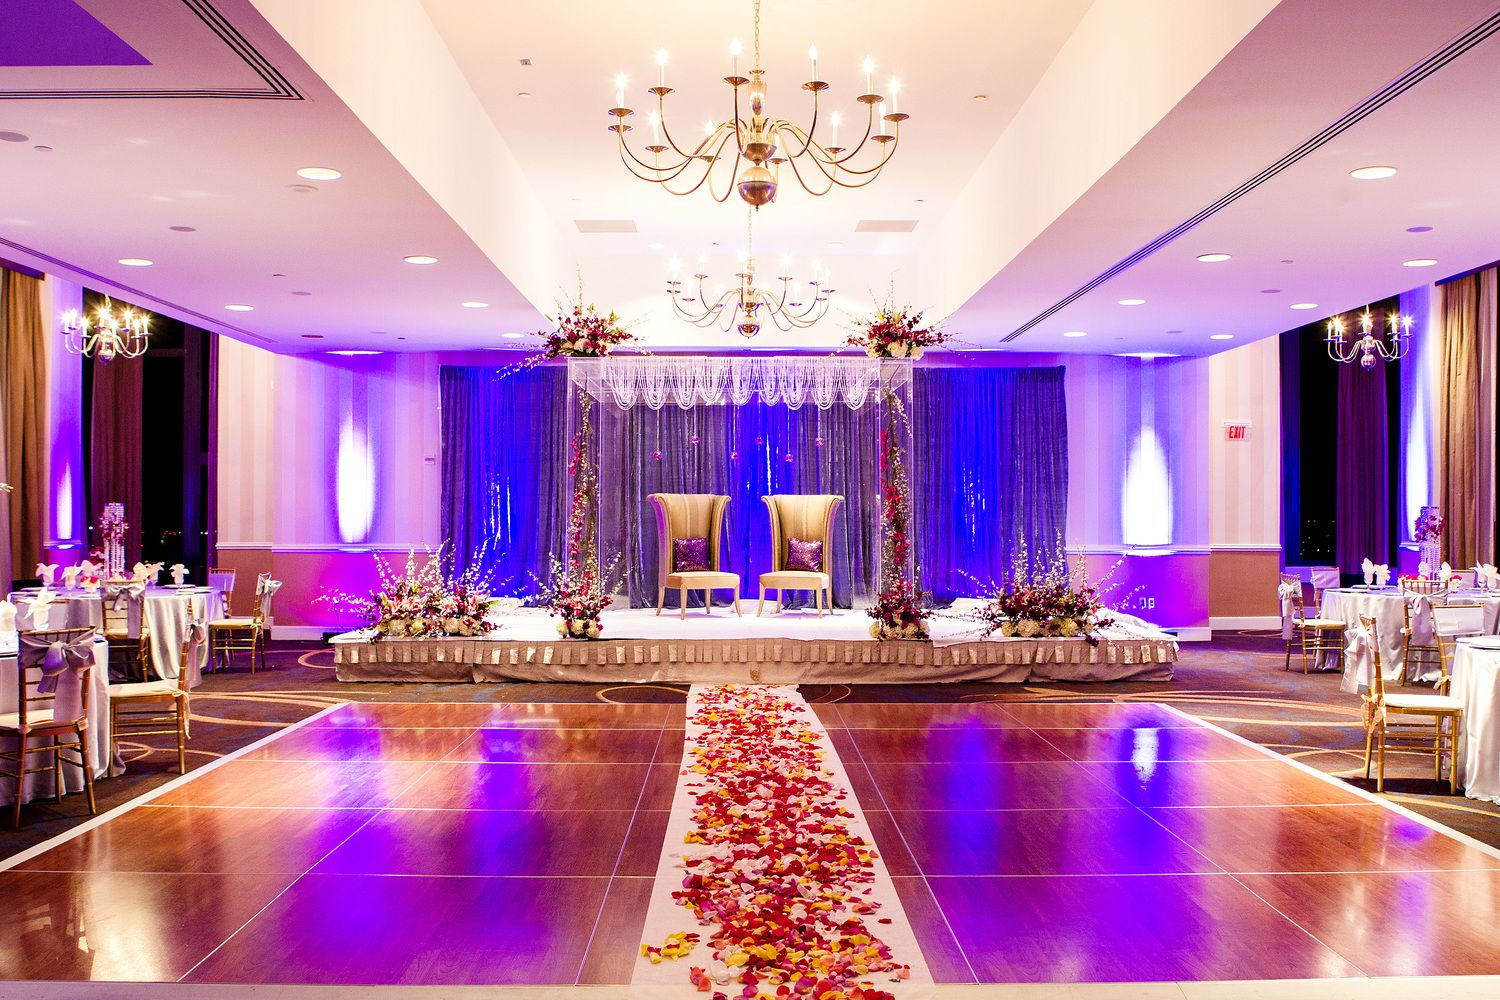 Wedding Decorations, Flower Decorations, Stage/Backdrop